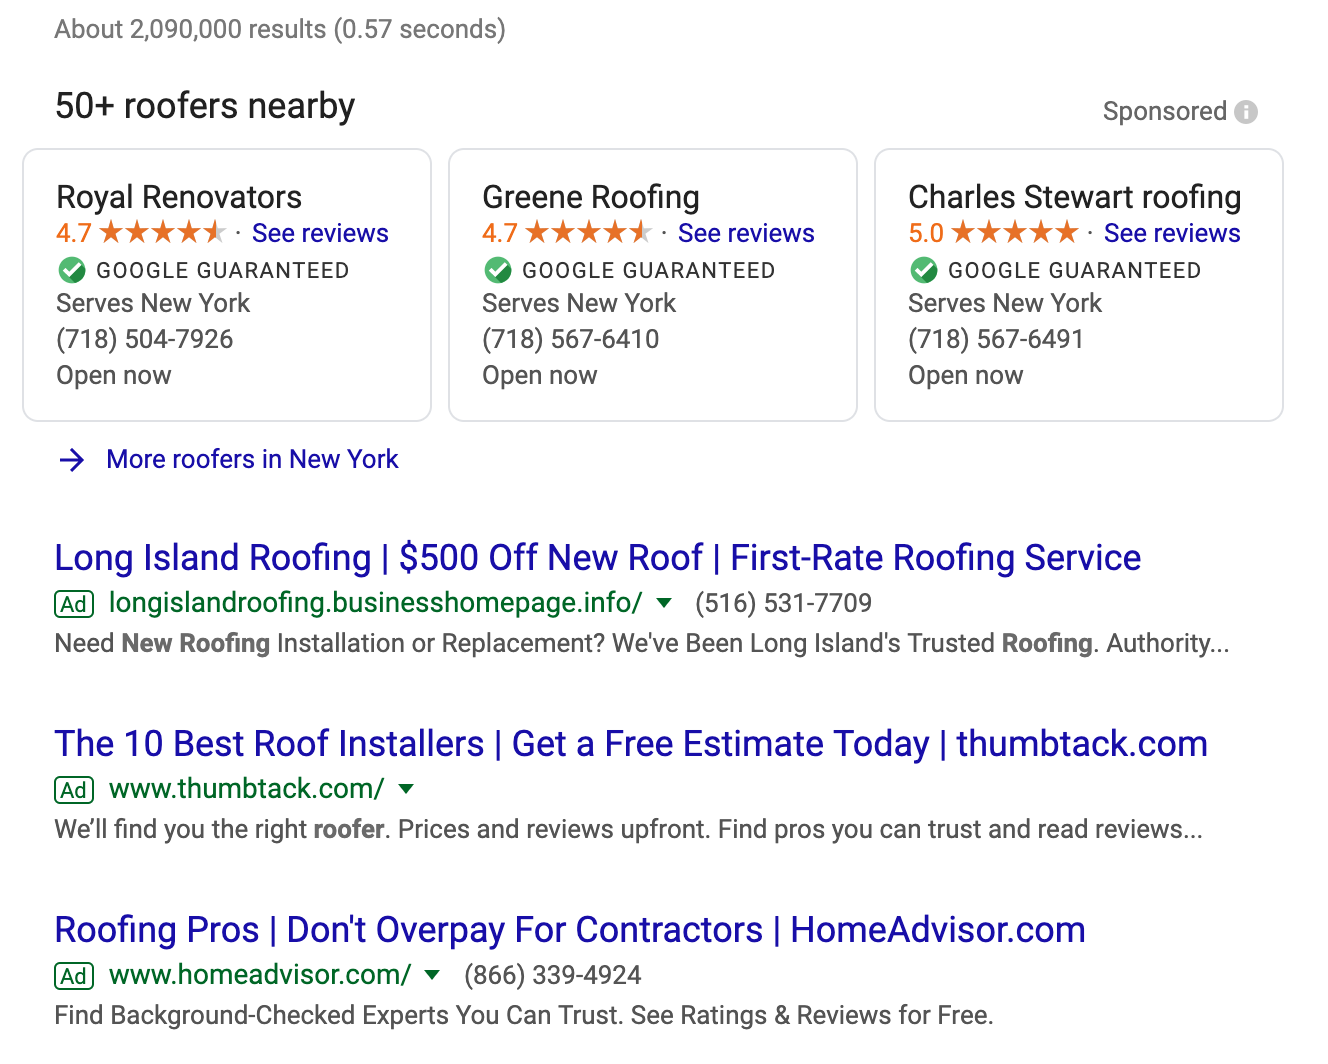 Image of Google Ads that have the Google guarantee badge